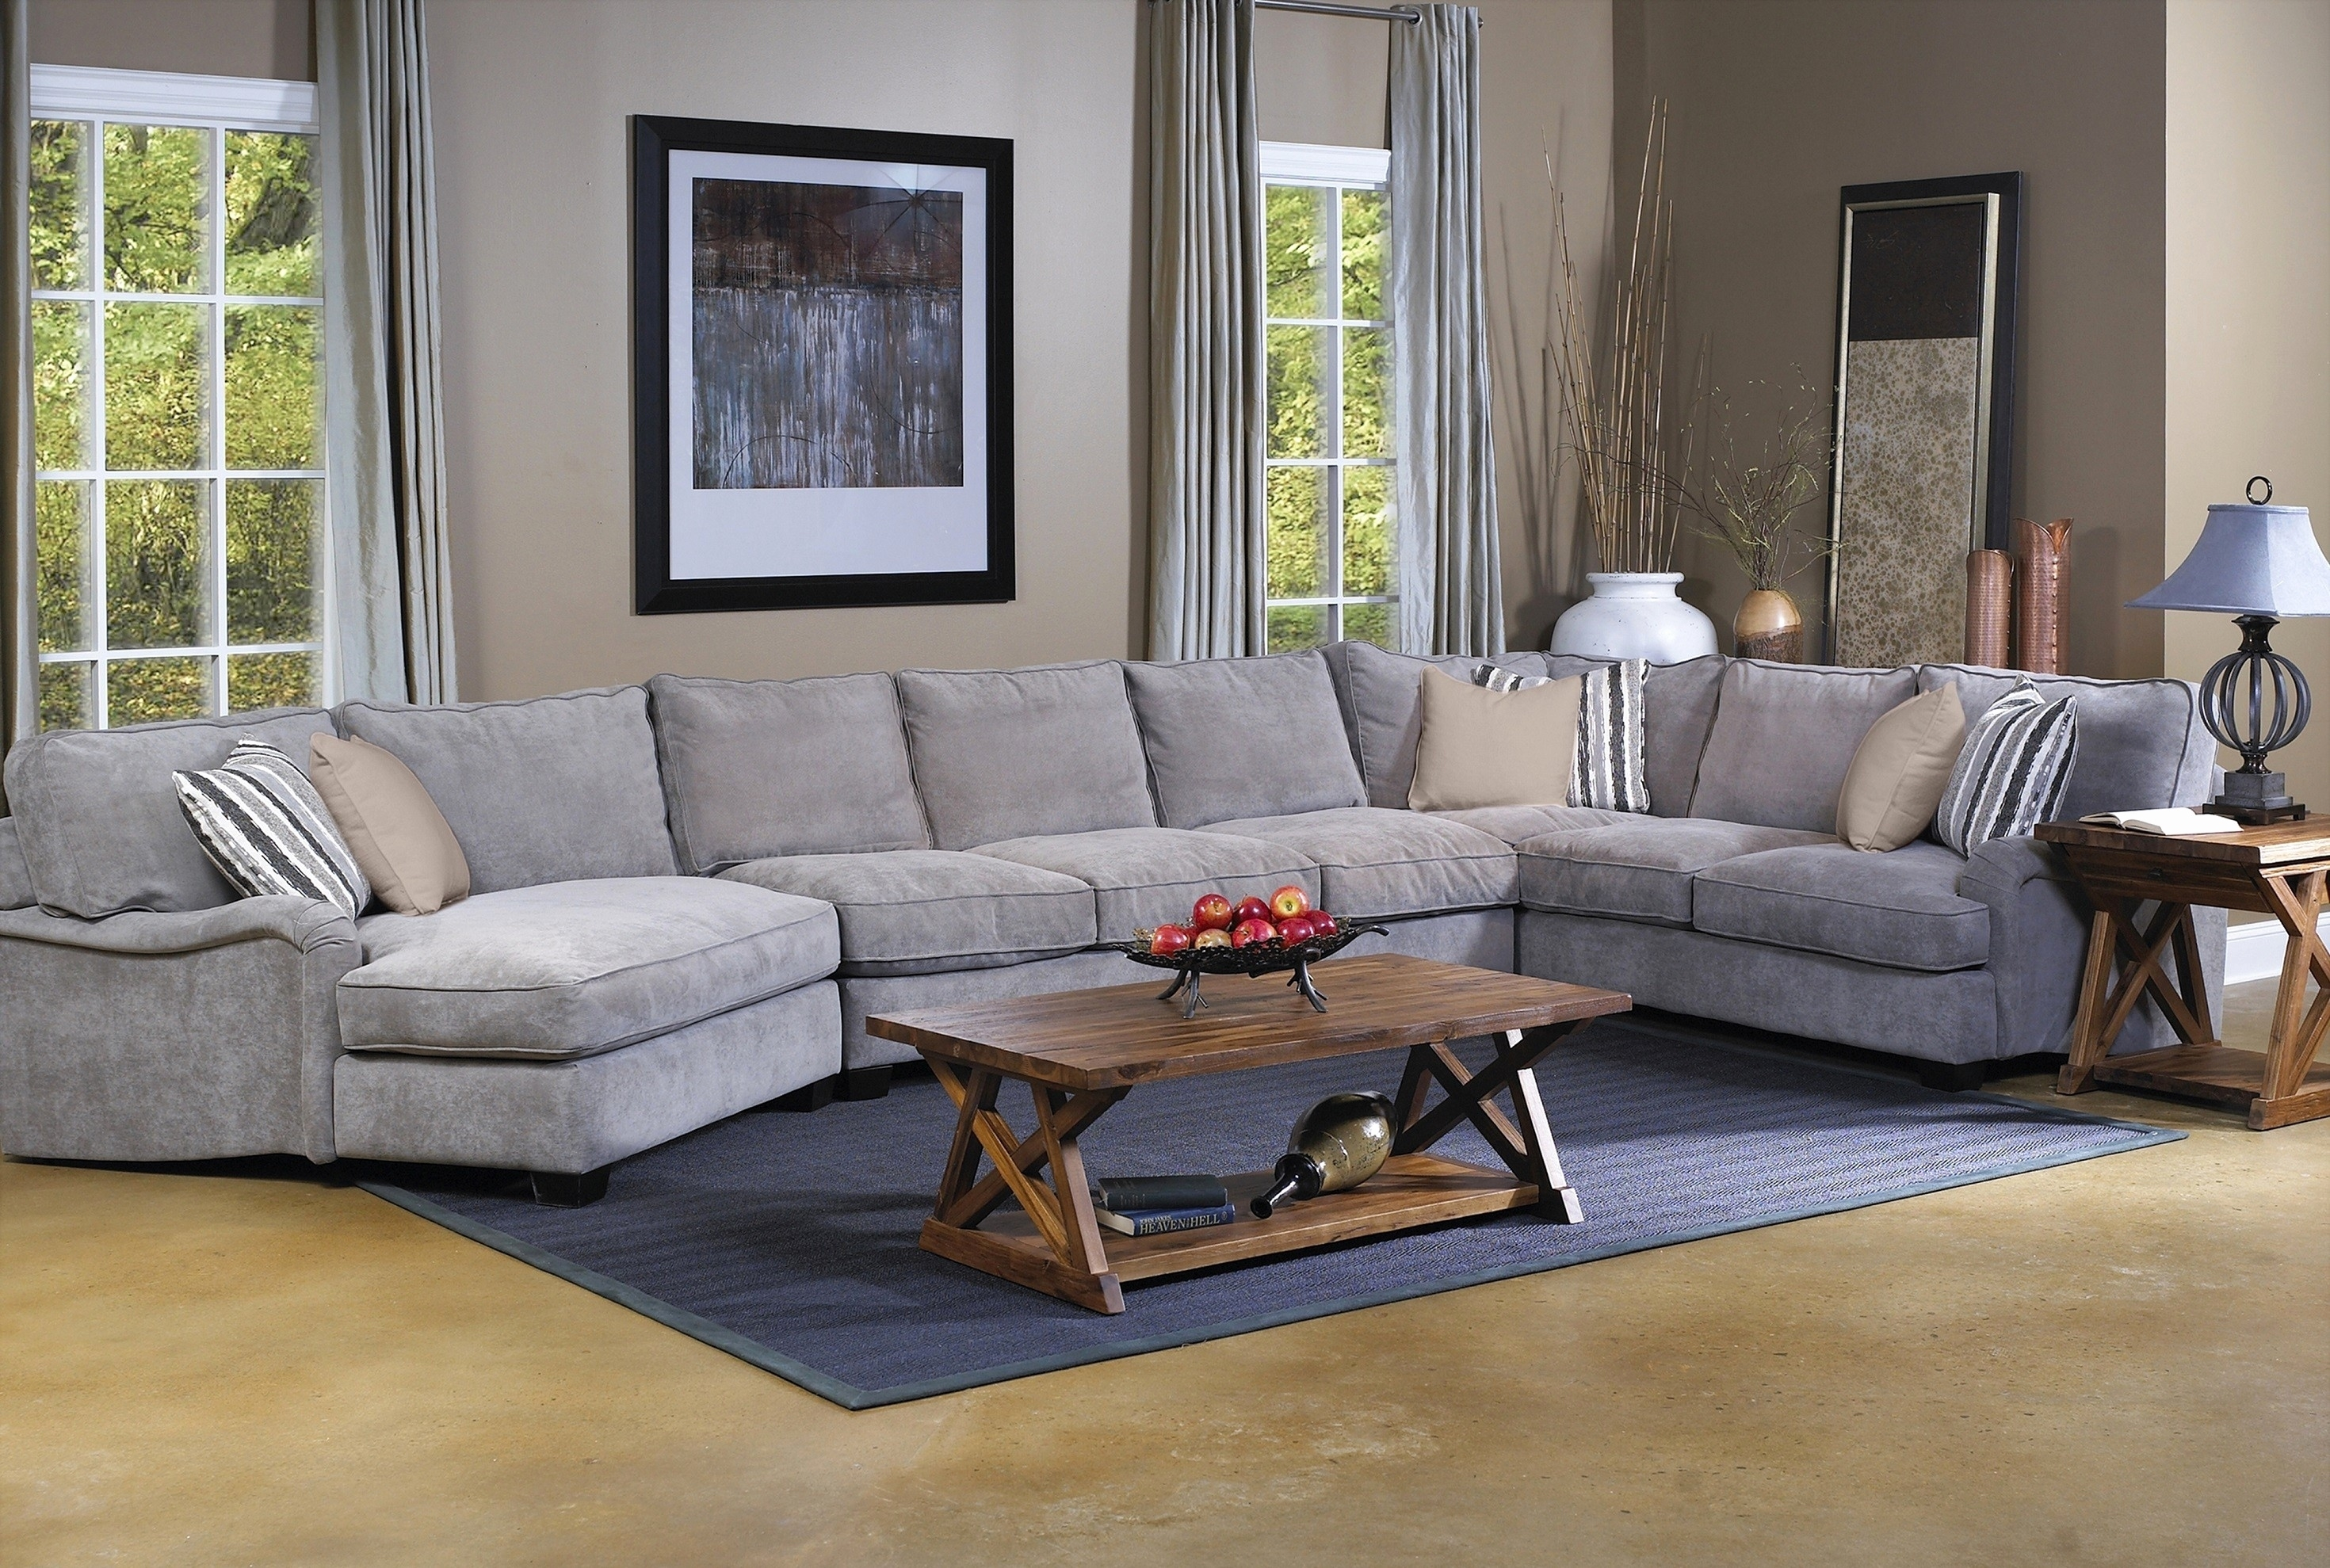 30 Elegant Pictures Of Grey Sectional Sofa With Chaise 2018 with regard to Sectional Sofas With Oversized Ottoman (Image 1 of 15)